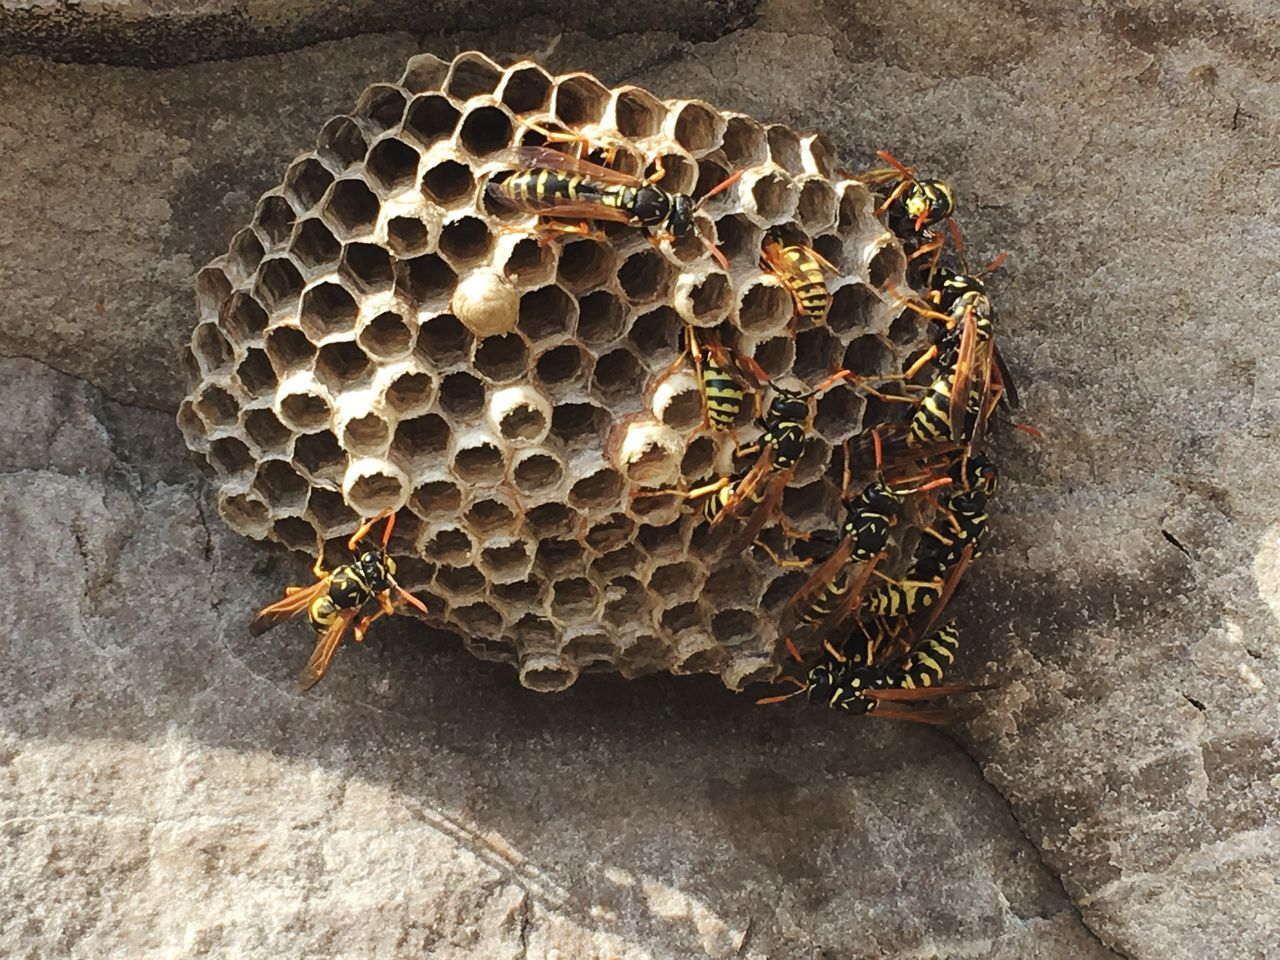 Wasp nest Hive Black And Yellow  Animal Stinger Nest Insect Rock Insects  World Of Nature Nature Wasps Wasp At Work Wasp Nest Wasp Life Wasps Nest Nature_collection Nature Photography Nature On Your Doorstep